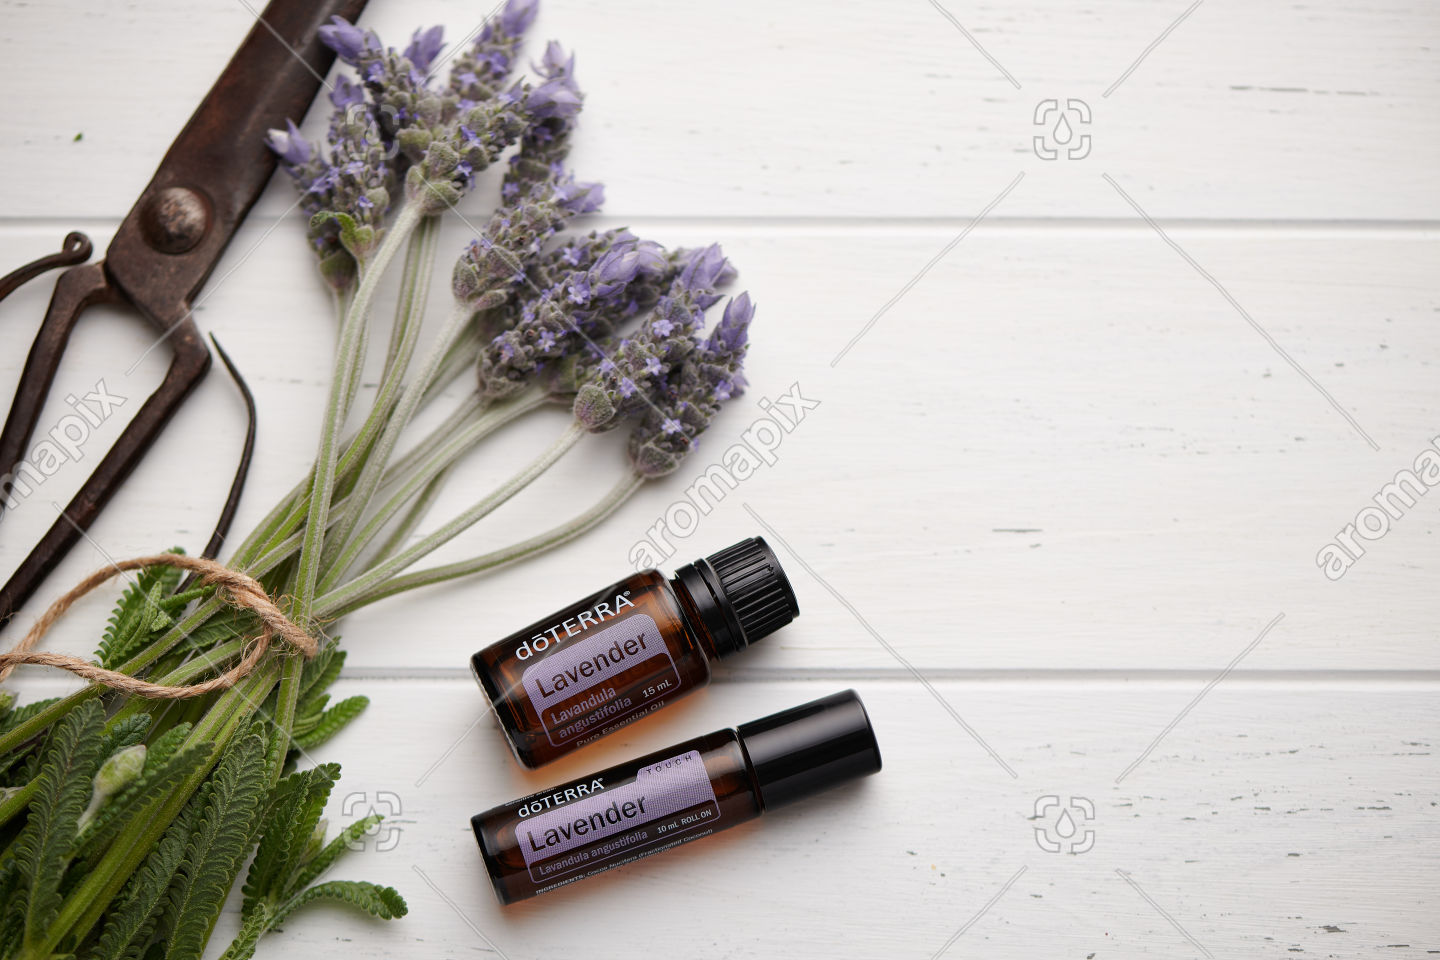 doTERRA Lavender, Lavender Touch and lavender flowers on white wooden background